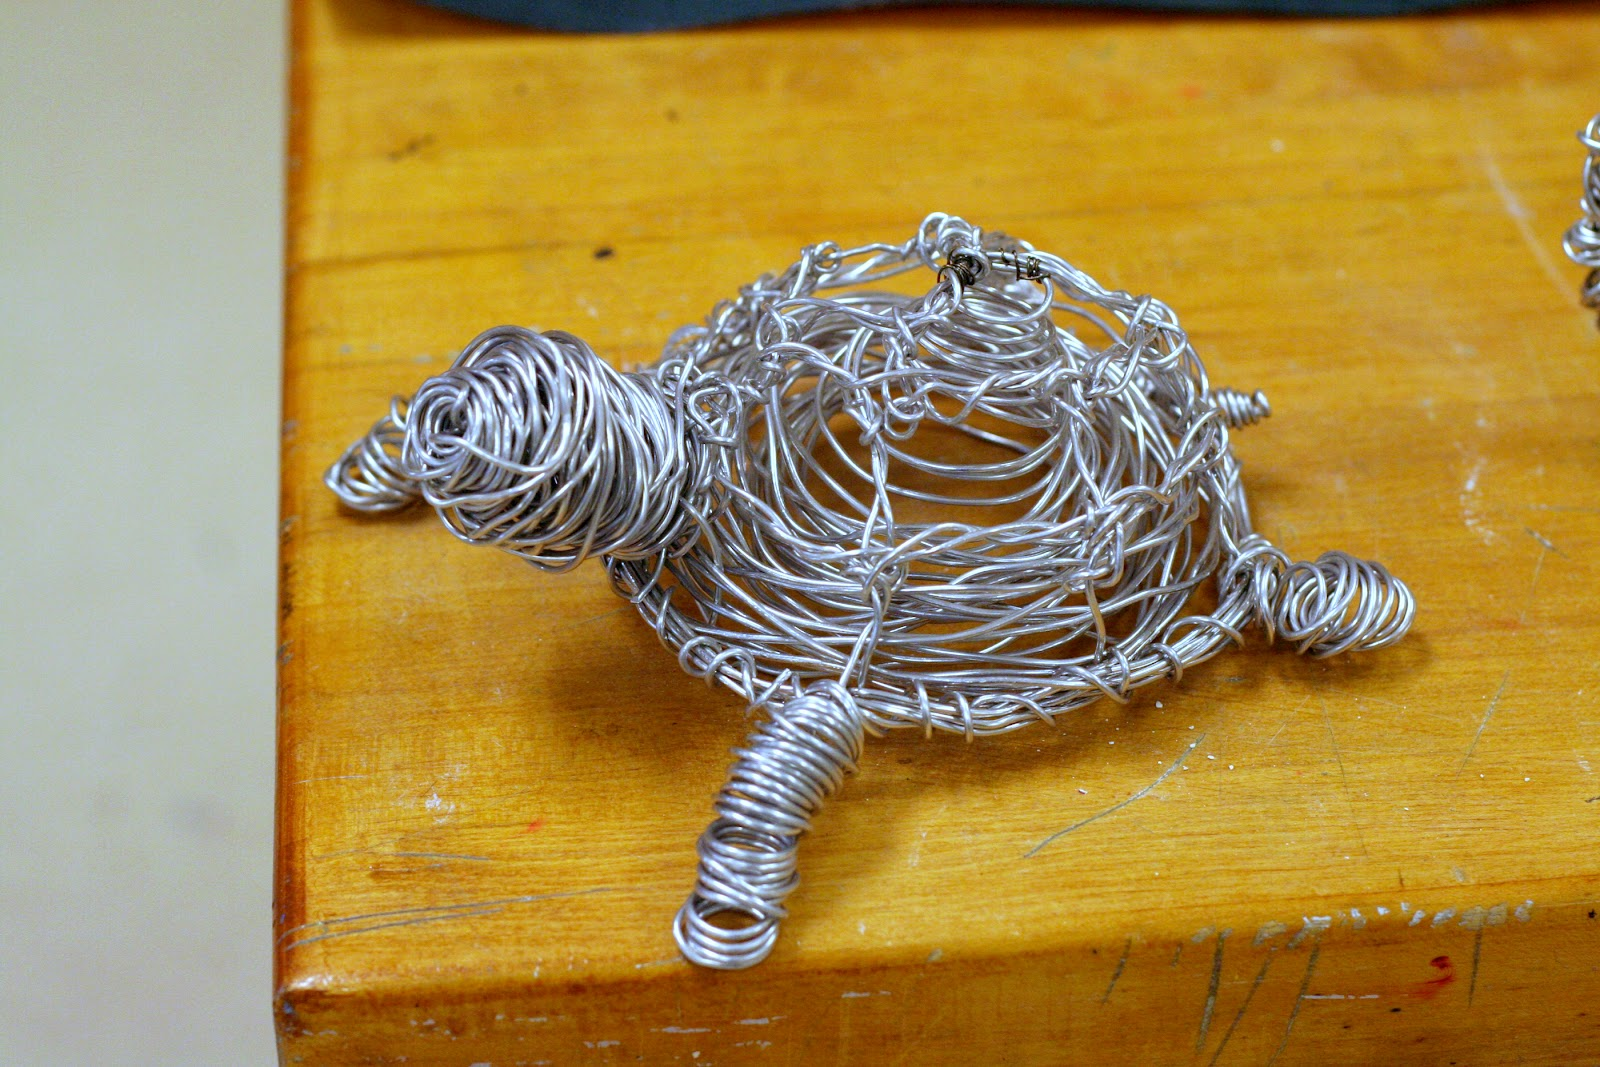 3d Wire Art Projects Center Chord A C E G Various Names A7 Adom7 Dominant Seventh Dream Pray Create Lesson Idea Continuous Line Rh Dreampraycreate Blogspot Com Sculpture Ideas